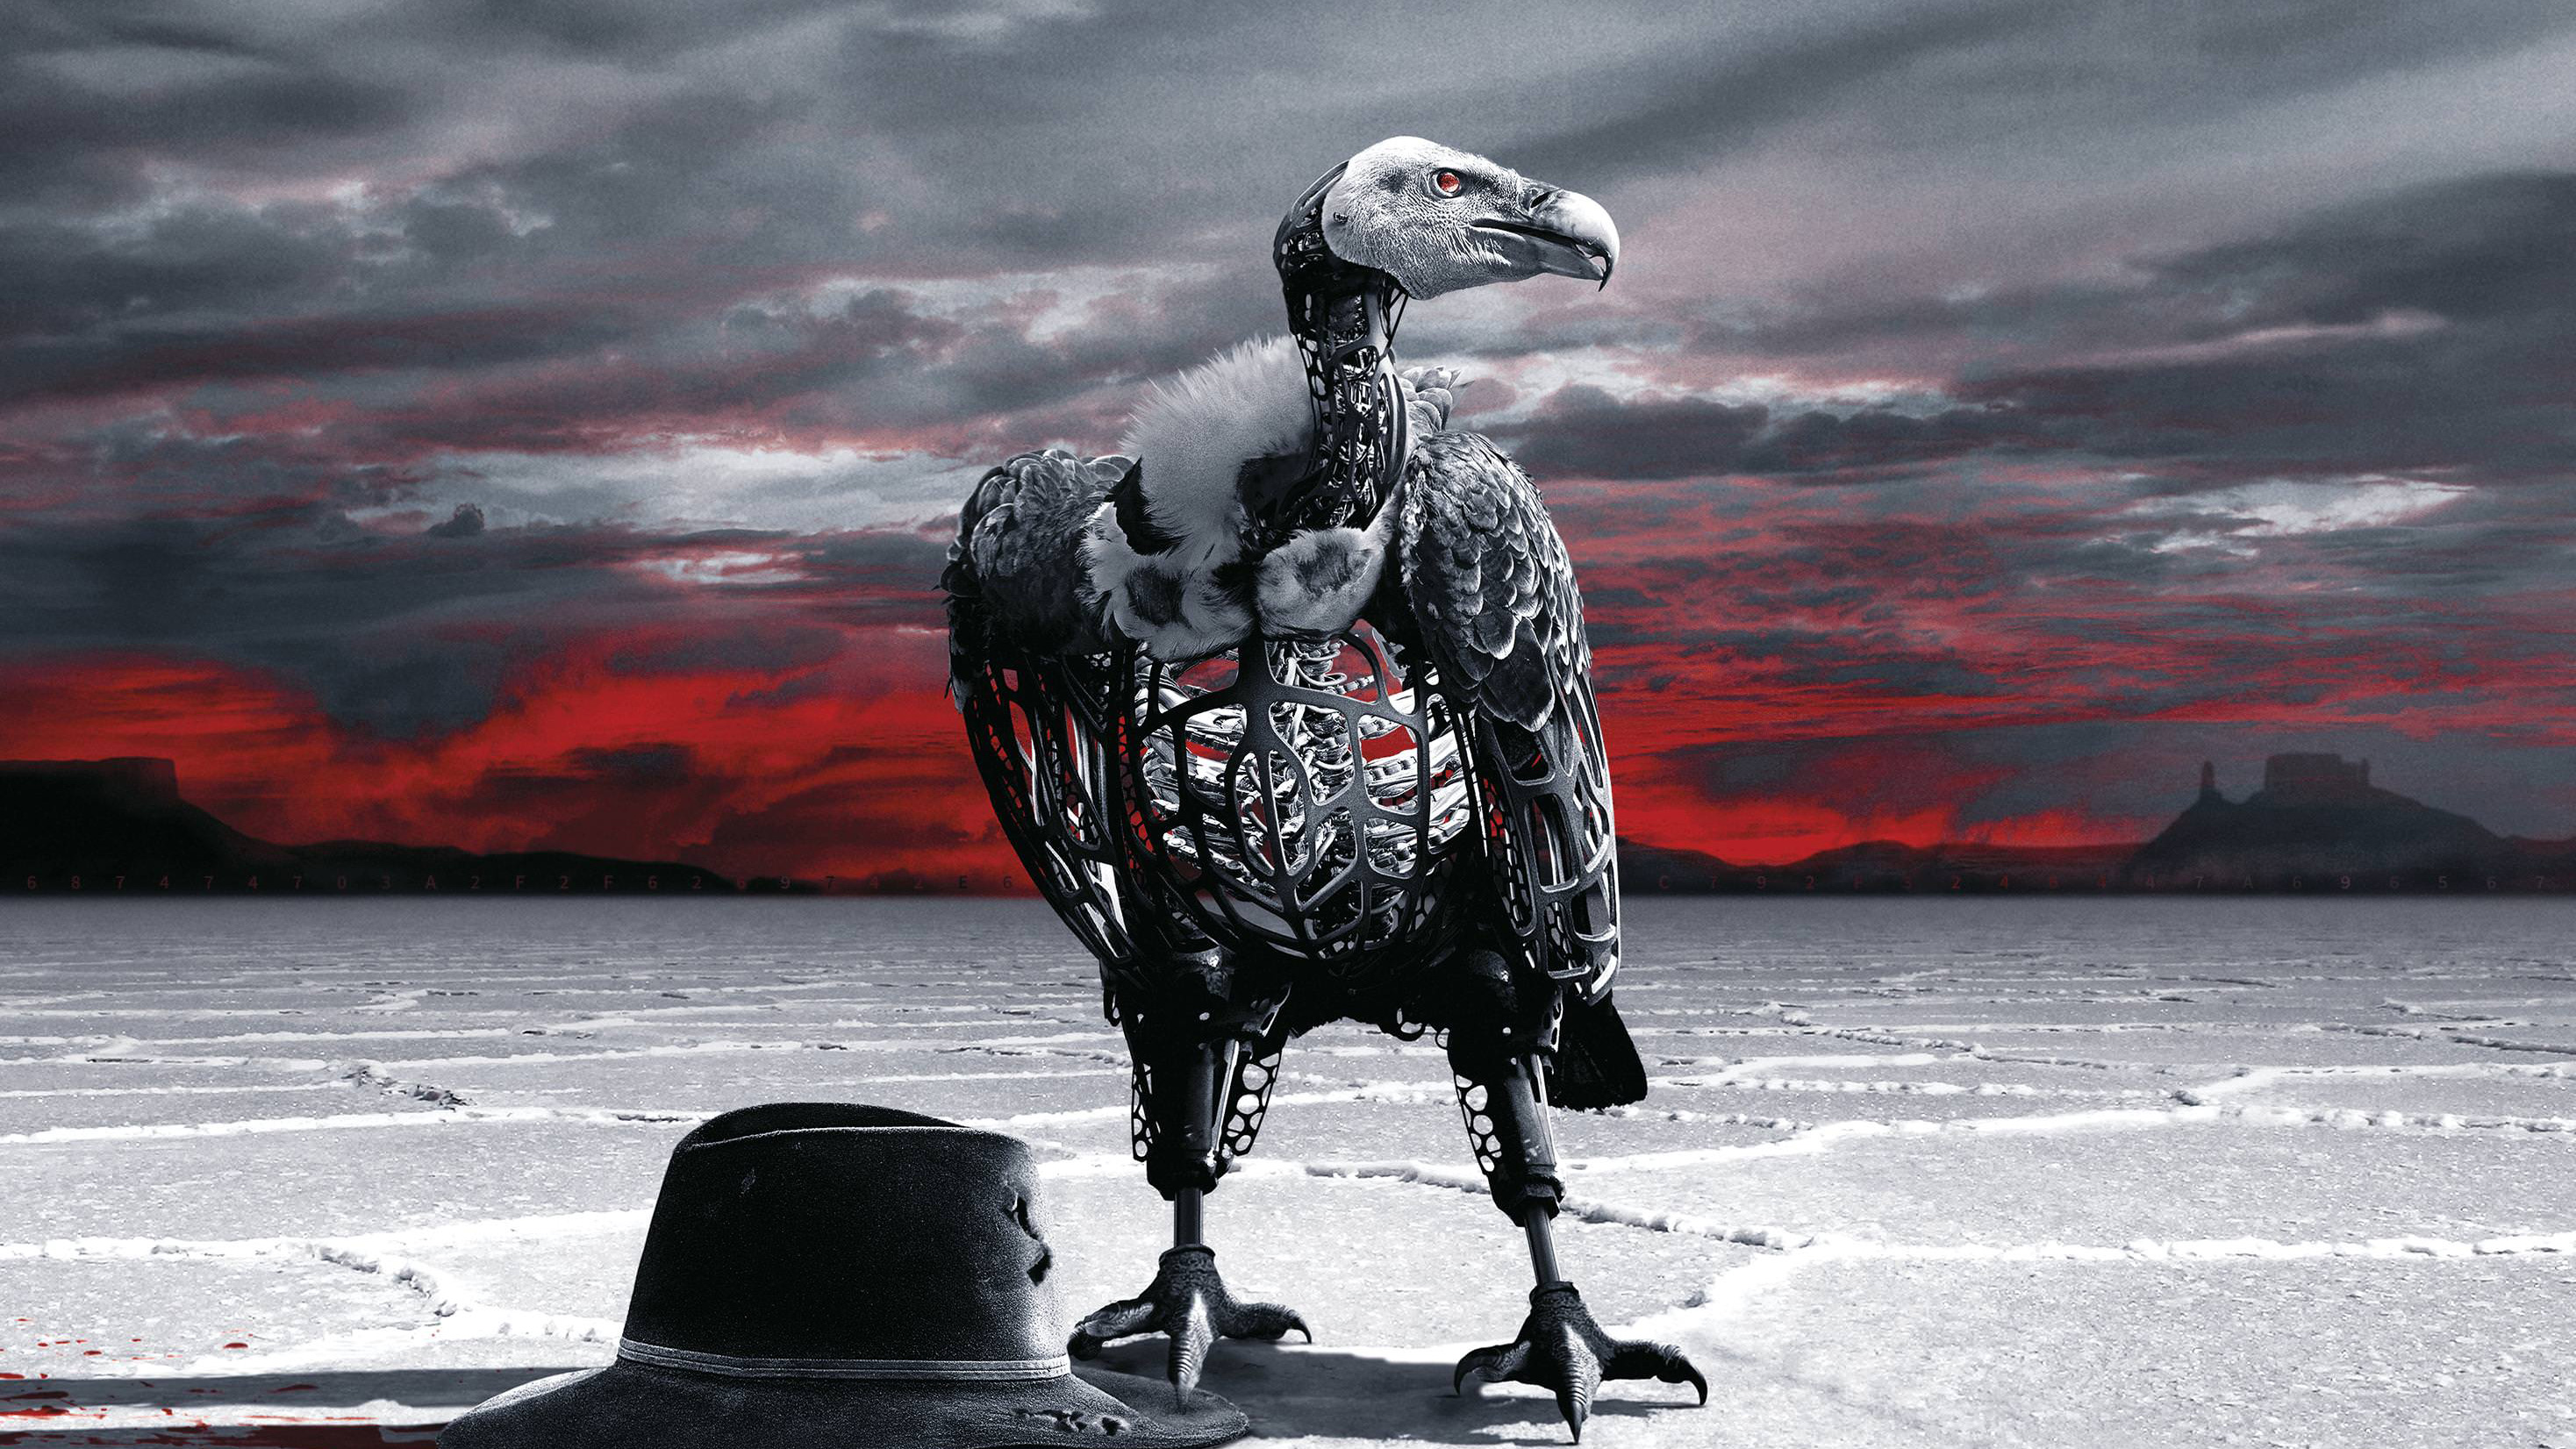 westworld 2 poster wallpaper background 64249